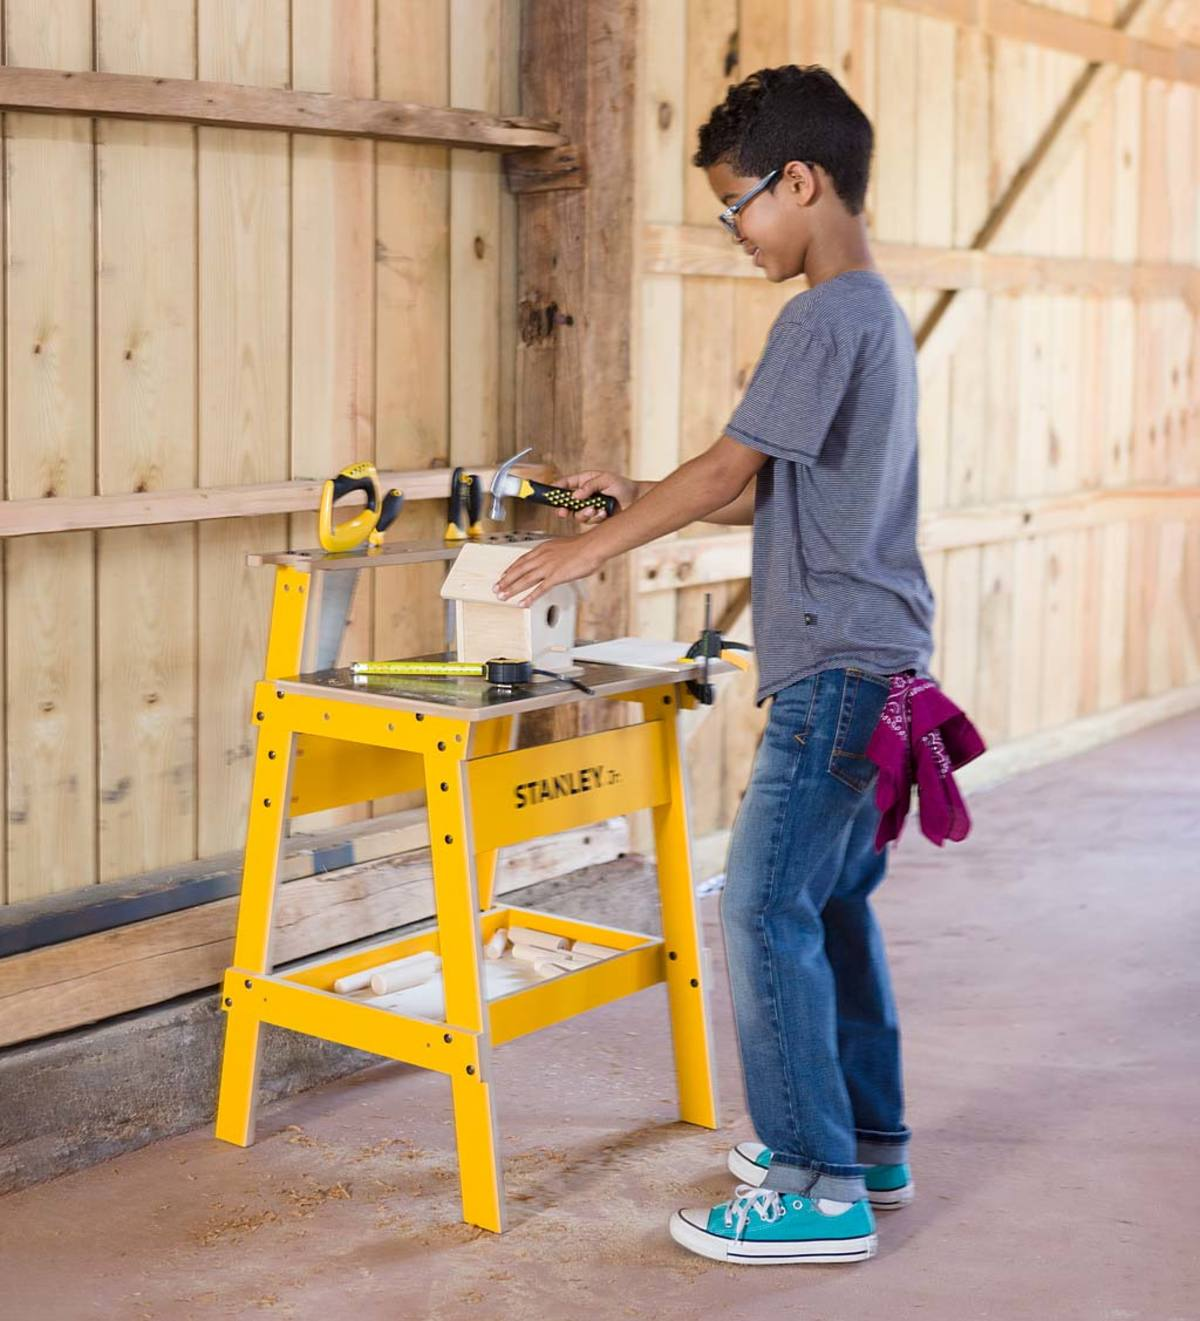 Terrific Stanley Jr Kids Work Bench And 10 Piece Tool Set View Caraccident5 Cool Chair Designs And Ideas Caraccident5Info